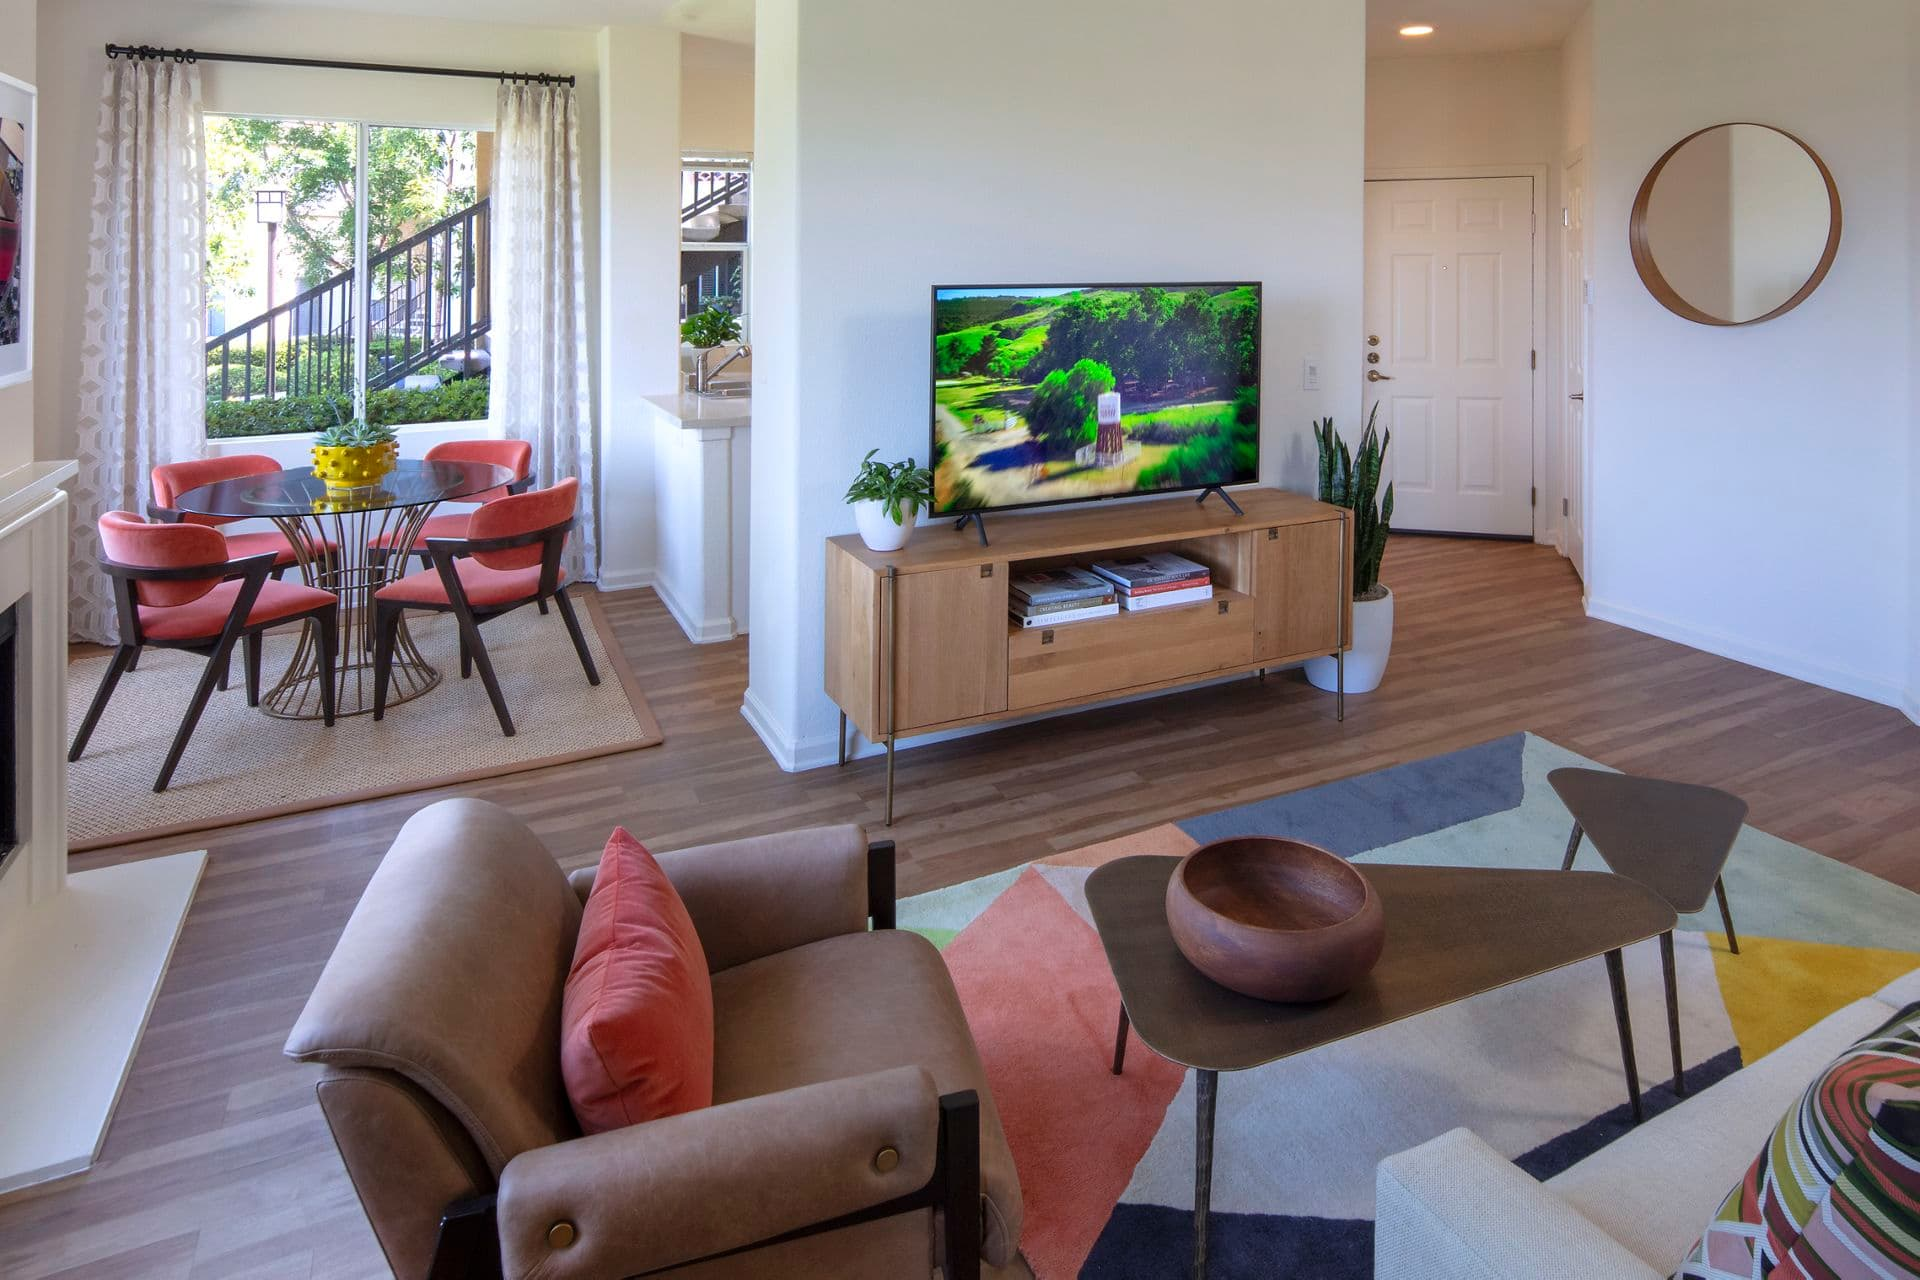 Interior view of living room and dining room at Vista Real Apartment Homes in Mission Viejo, CA.